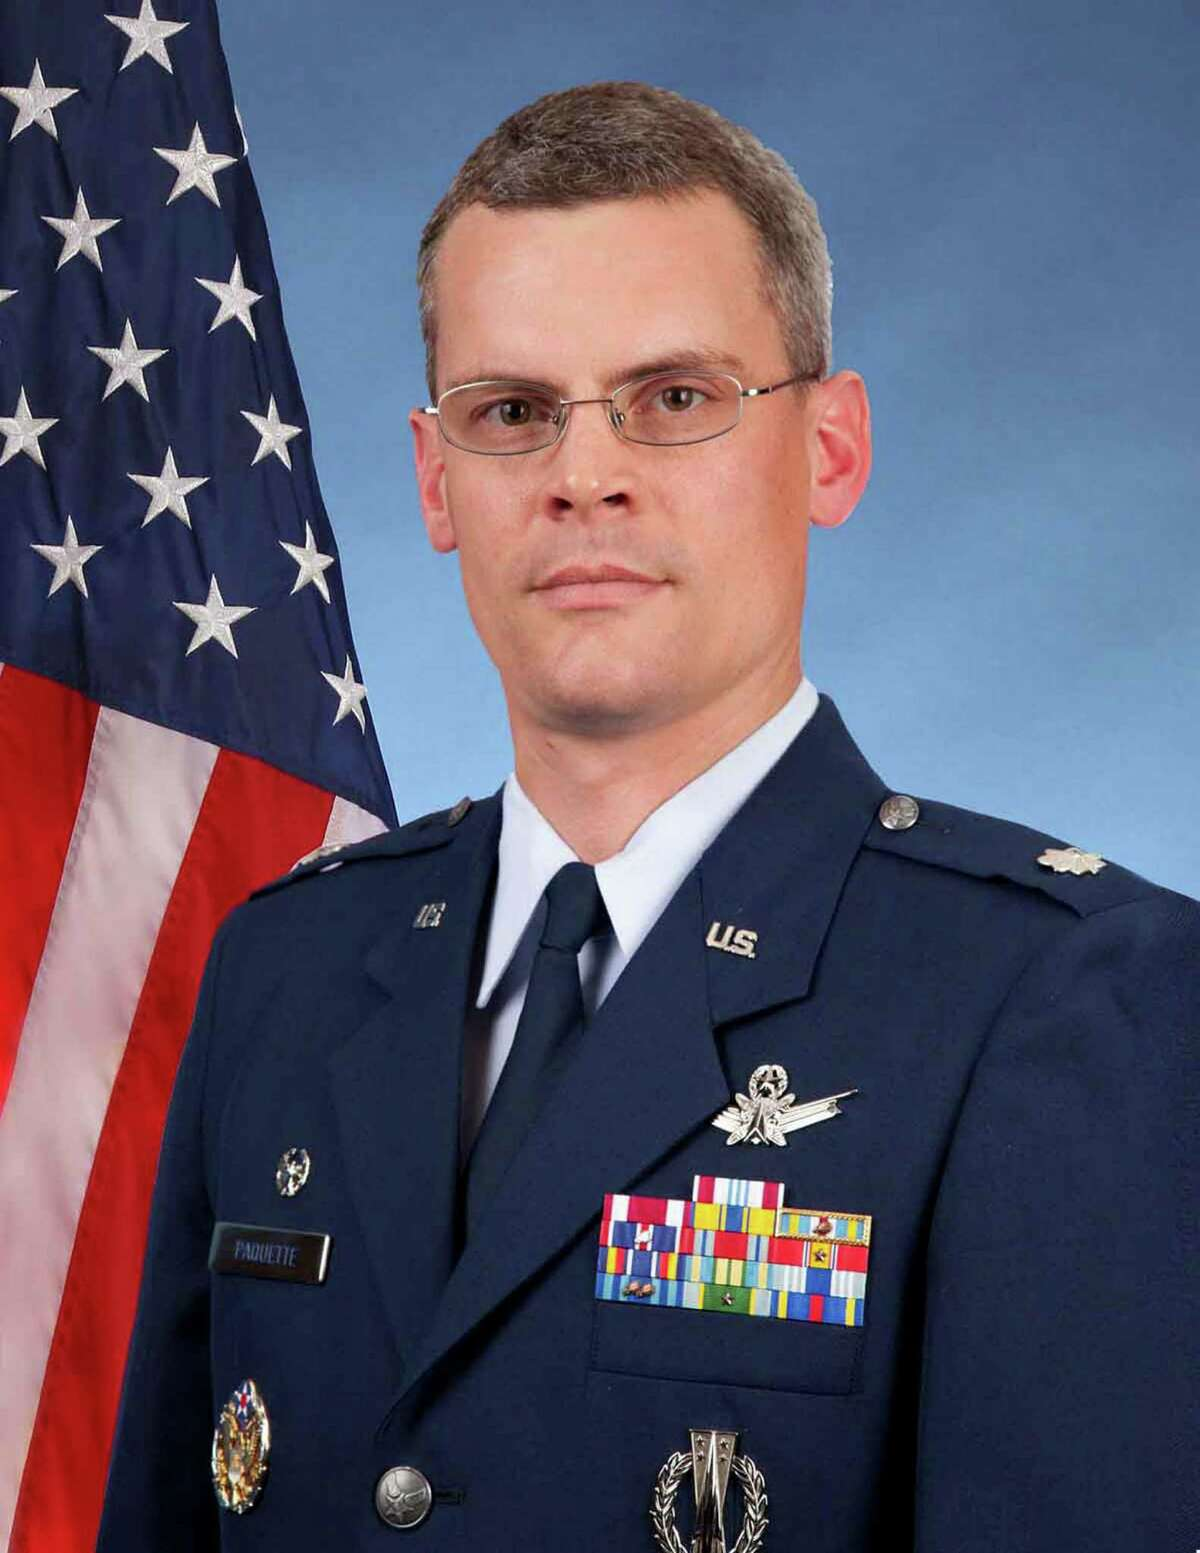 The Air Force onWednesdayrelieved Lt. Col. Mike Paquette, the commander of a basic training squadron that has charged three instructors with having illicit sexual contact with recruits - all of them women.